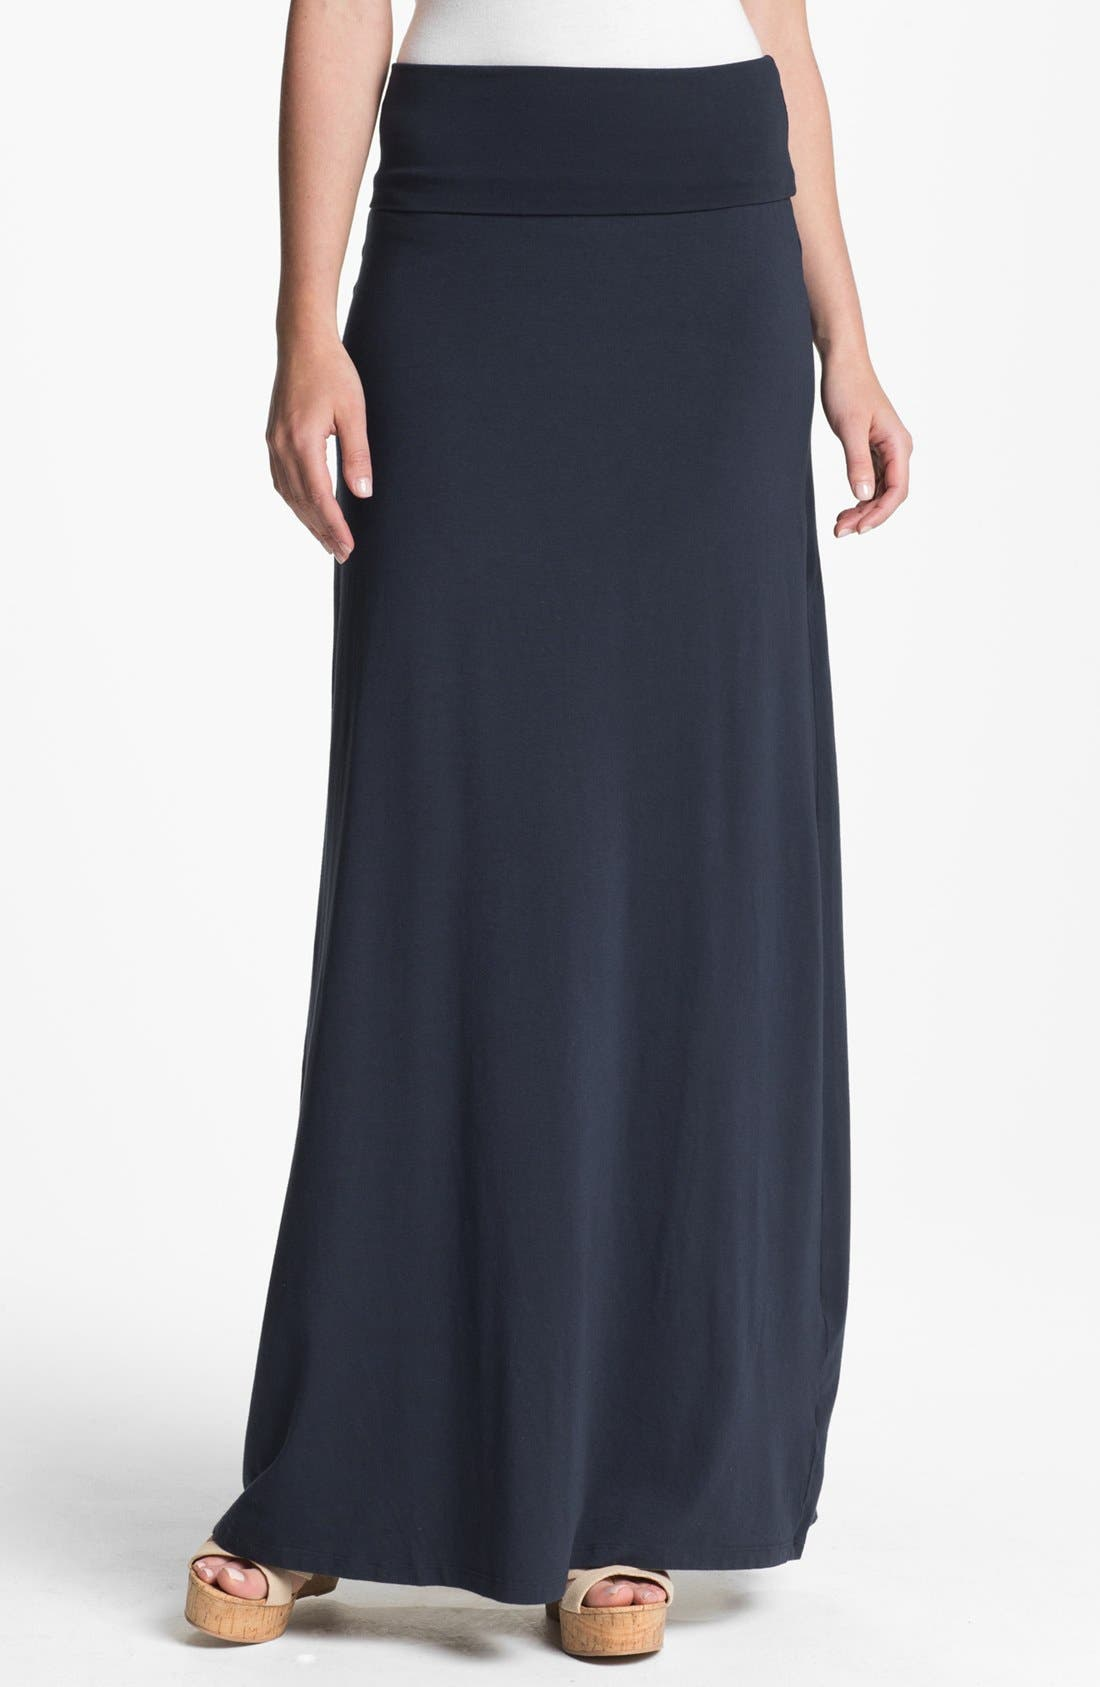 Alternate Image 1 Selected - Splendid Knit Maxi Skirt